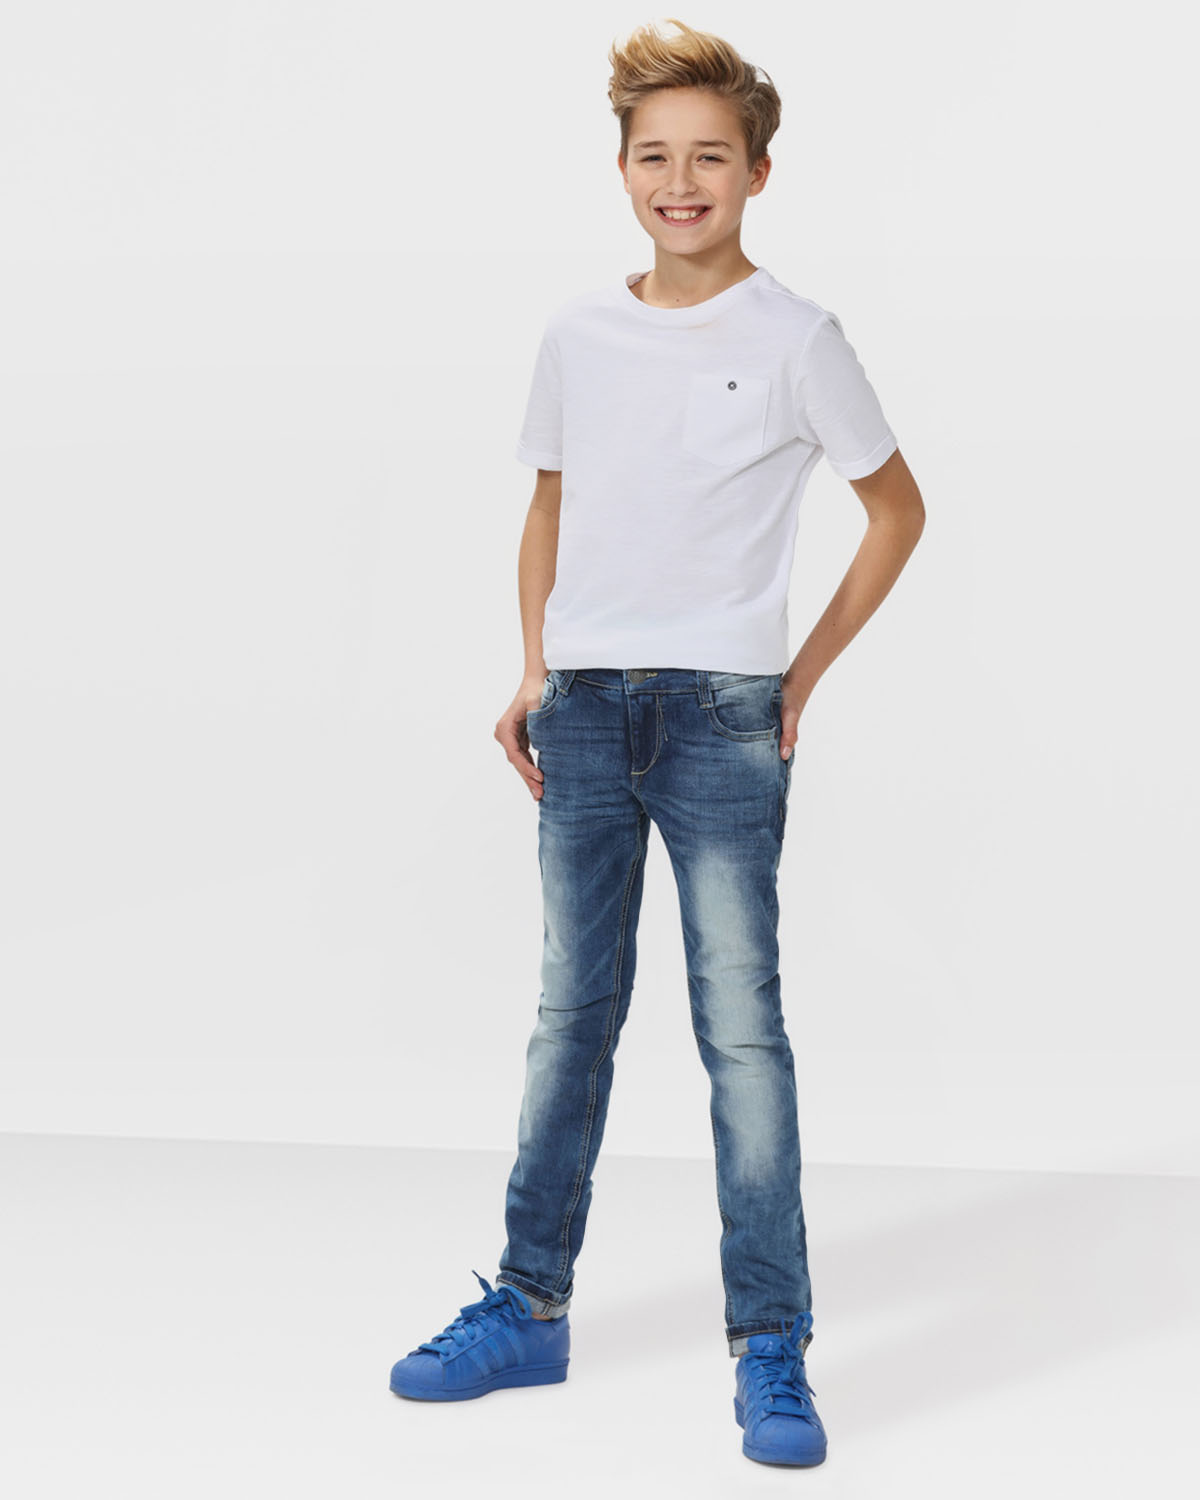 Shop Old Navy's High-Rise Rockstar Super Skinny Jeans for Women: Button-closure and zip fly.,Riveted scoop pockets and coin pocket in front; patch pockets in back.,Black denim, with tonal topstitching and added stretch.,Tag-free label inside back waist for added comfort.